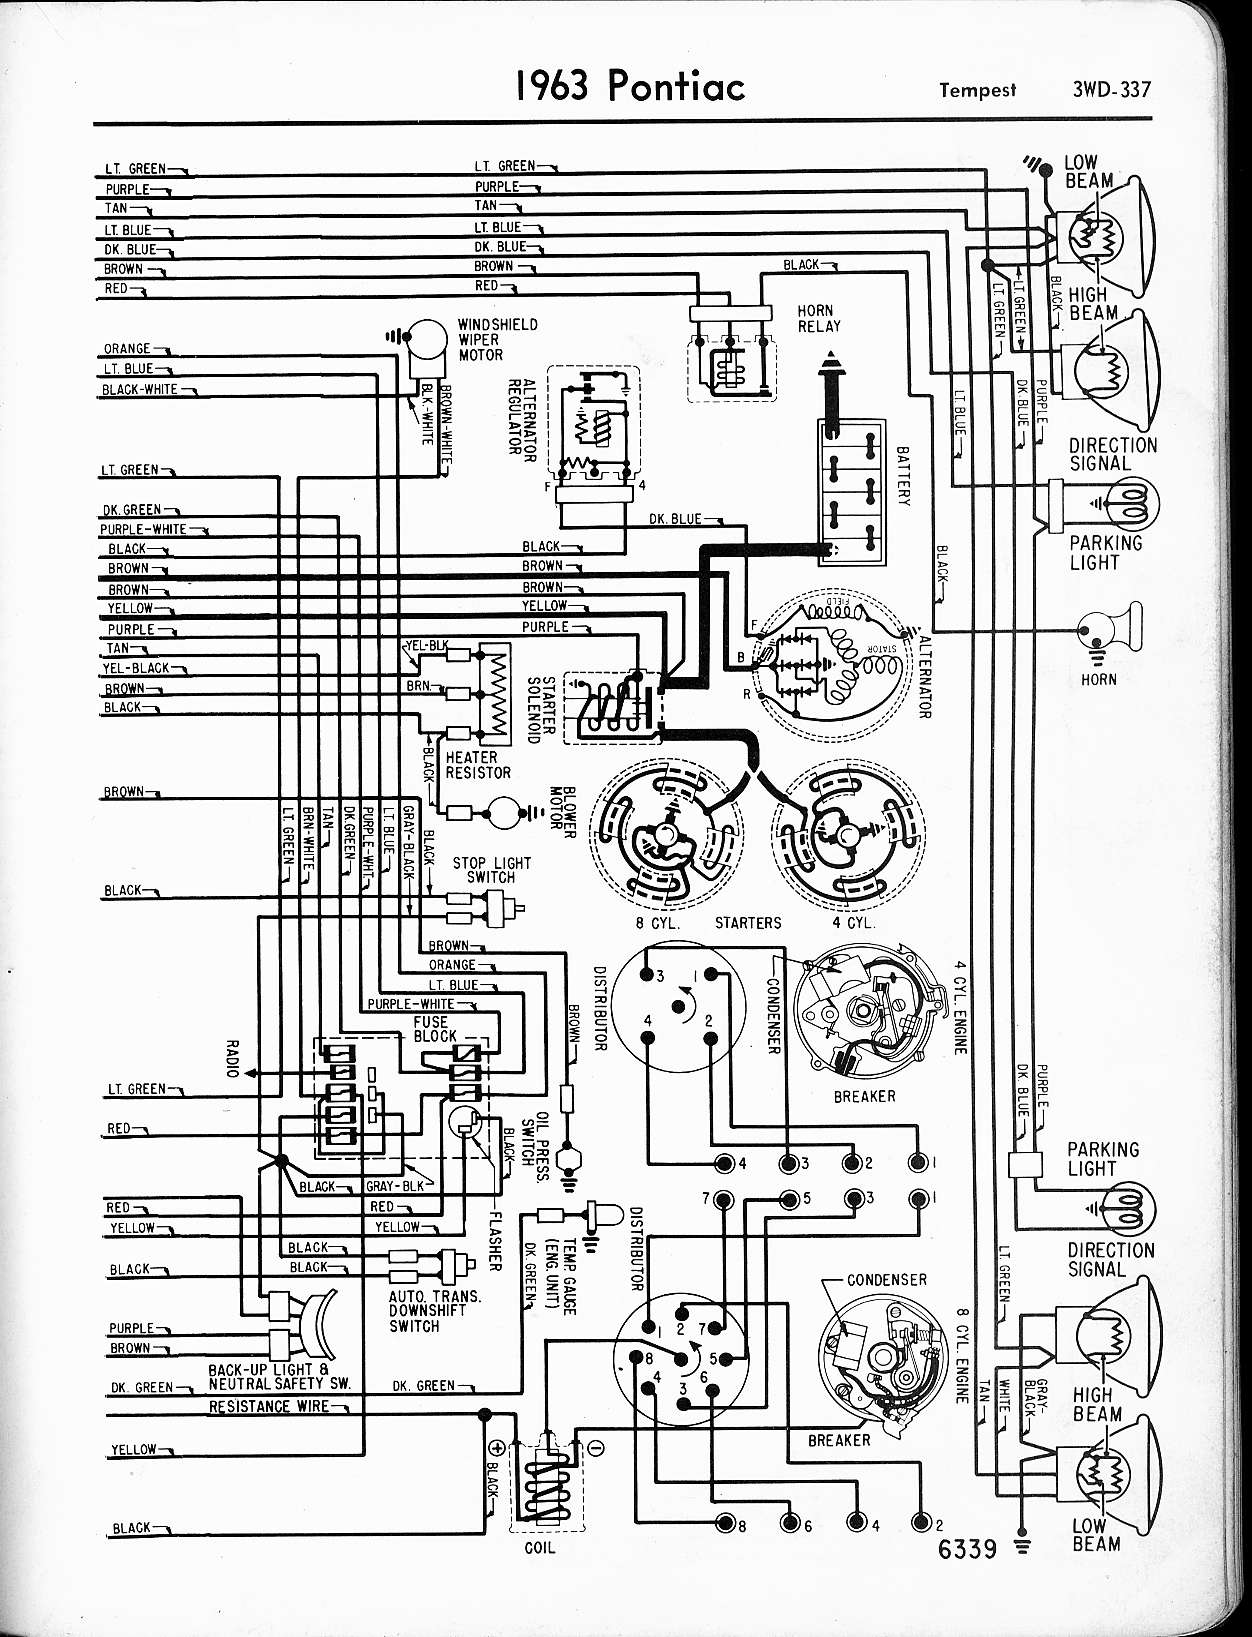 67 Gto Engine Wiring Harness Library 426 Hemi Diagram 65 Schematic Just Data Rh Ag Skiphire Co Uk 1968 Pontiac